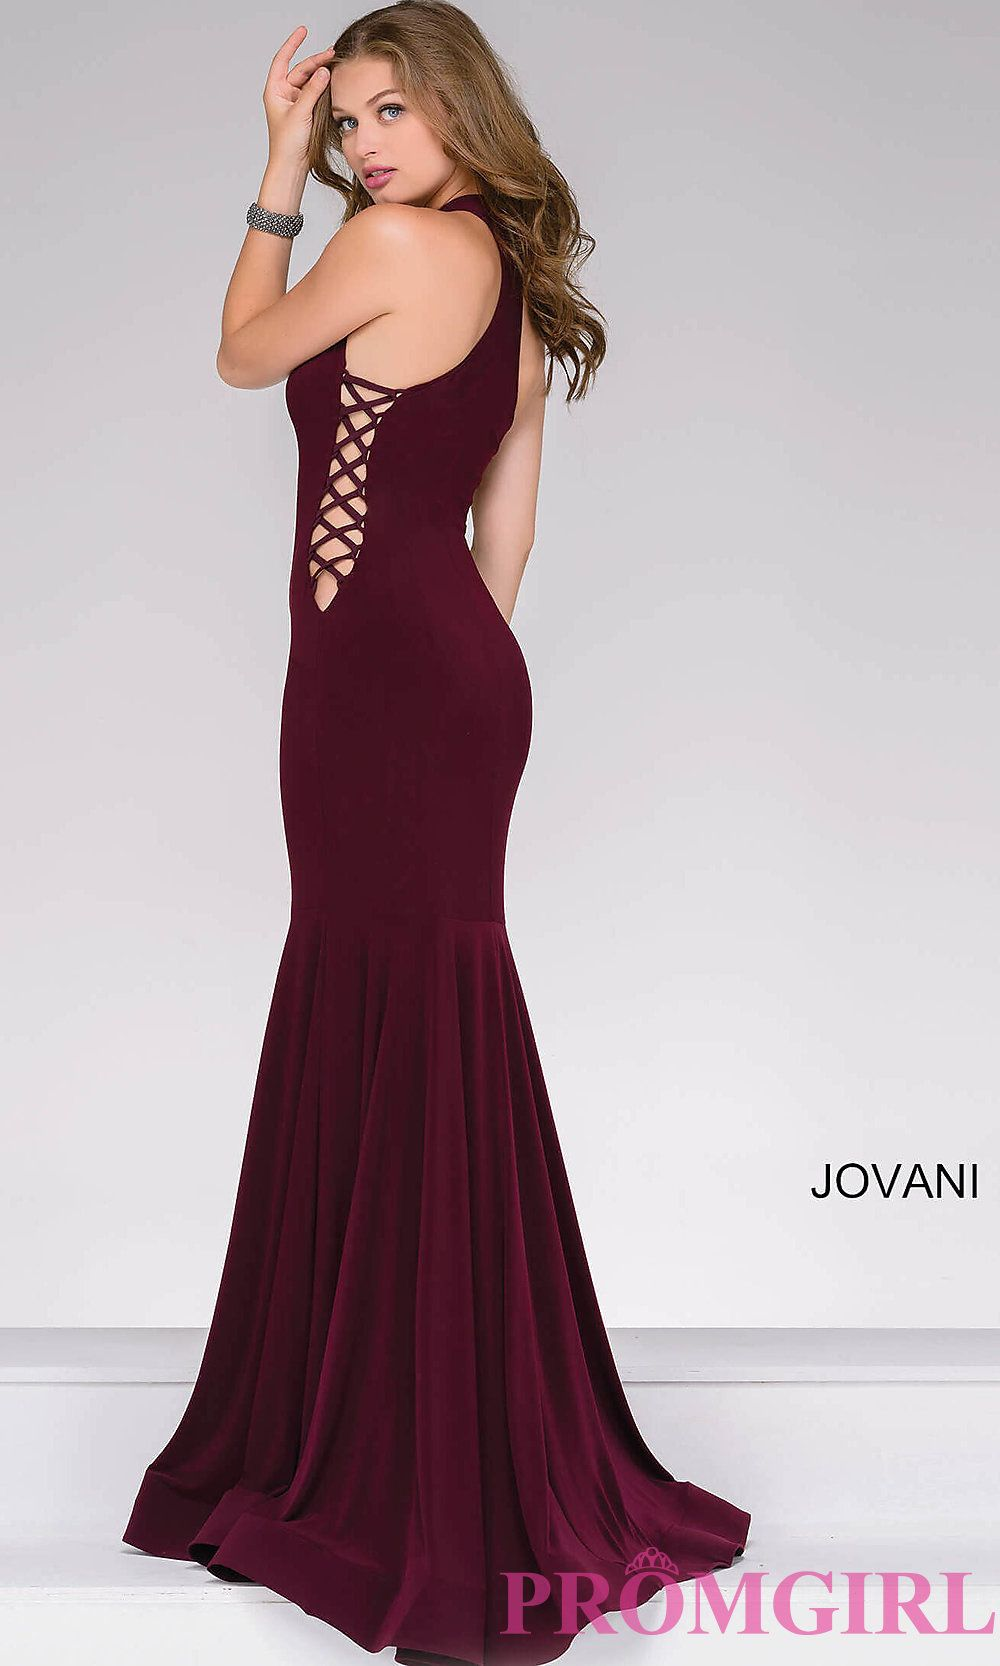 a83fbe12 High-Neck Long Prom Dress with Lace-Up Sides | Prom. | Prom dresses ...